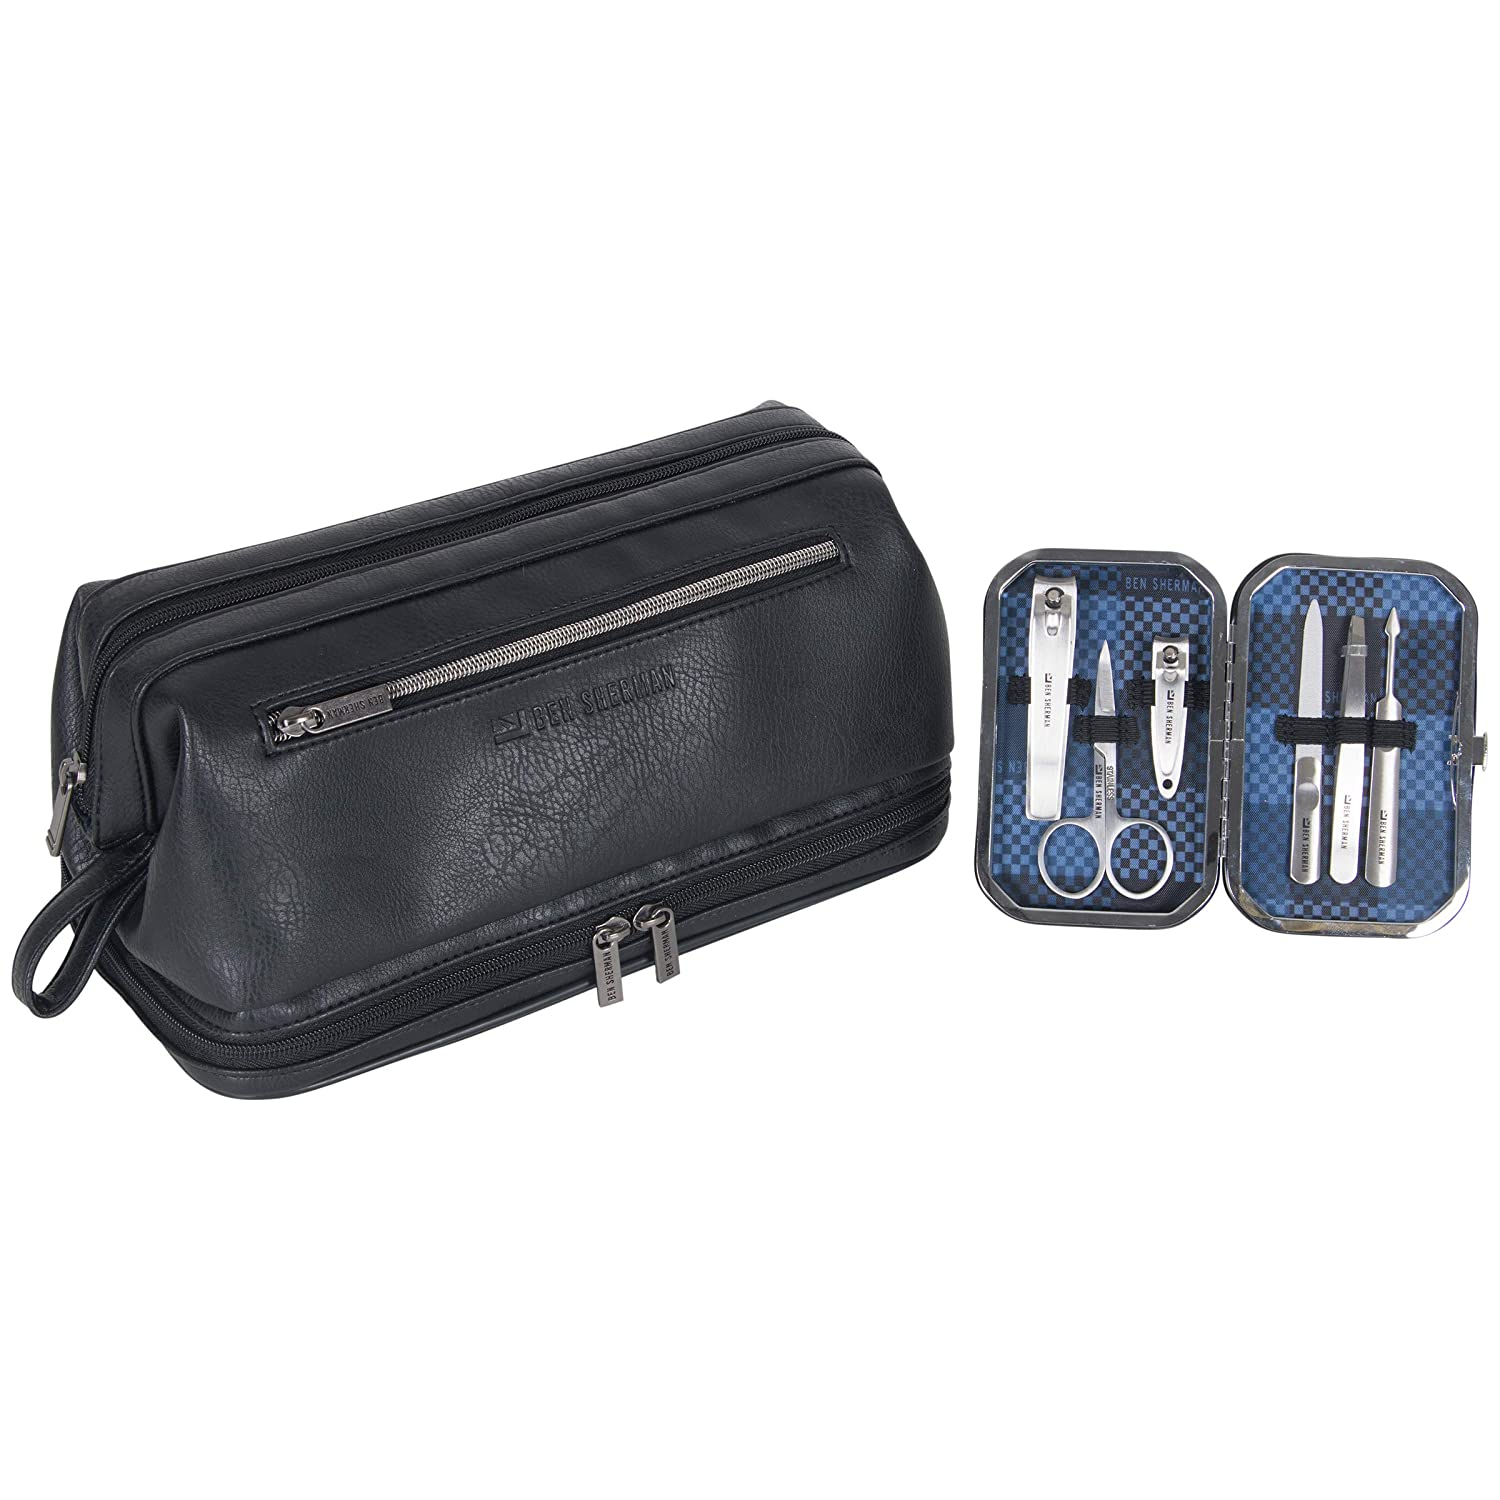 Ben Sherman Noak Hill Collection Vegan Leather Toiletry Travel Kit, Black, 2PC Set: Industrial & Scientific